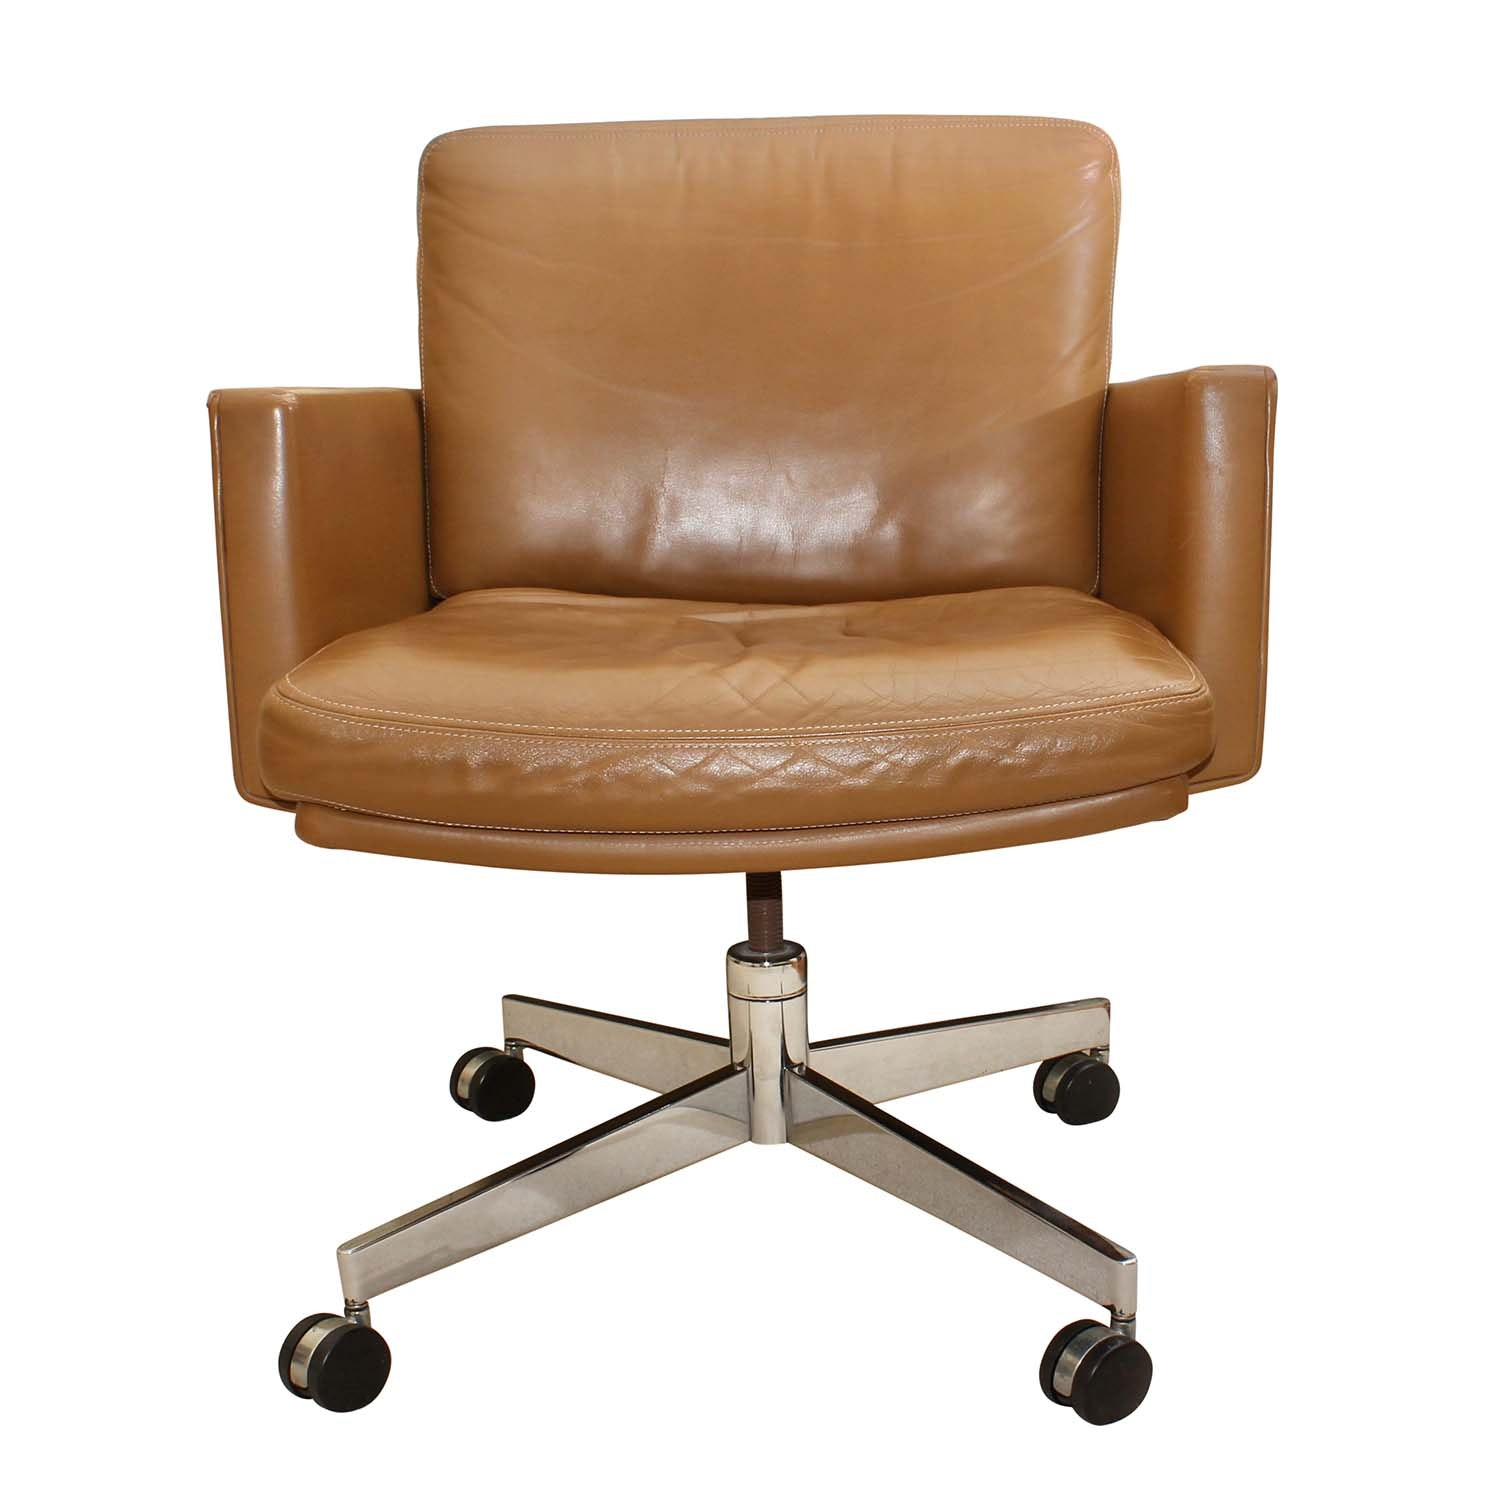 Stow Davis Mid Century Modern Office Chair